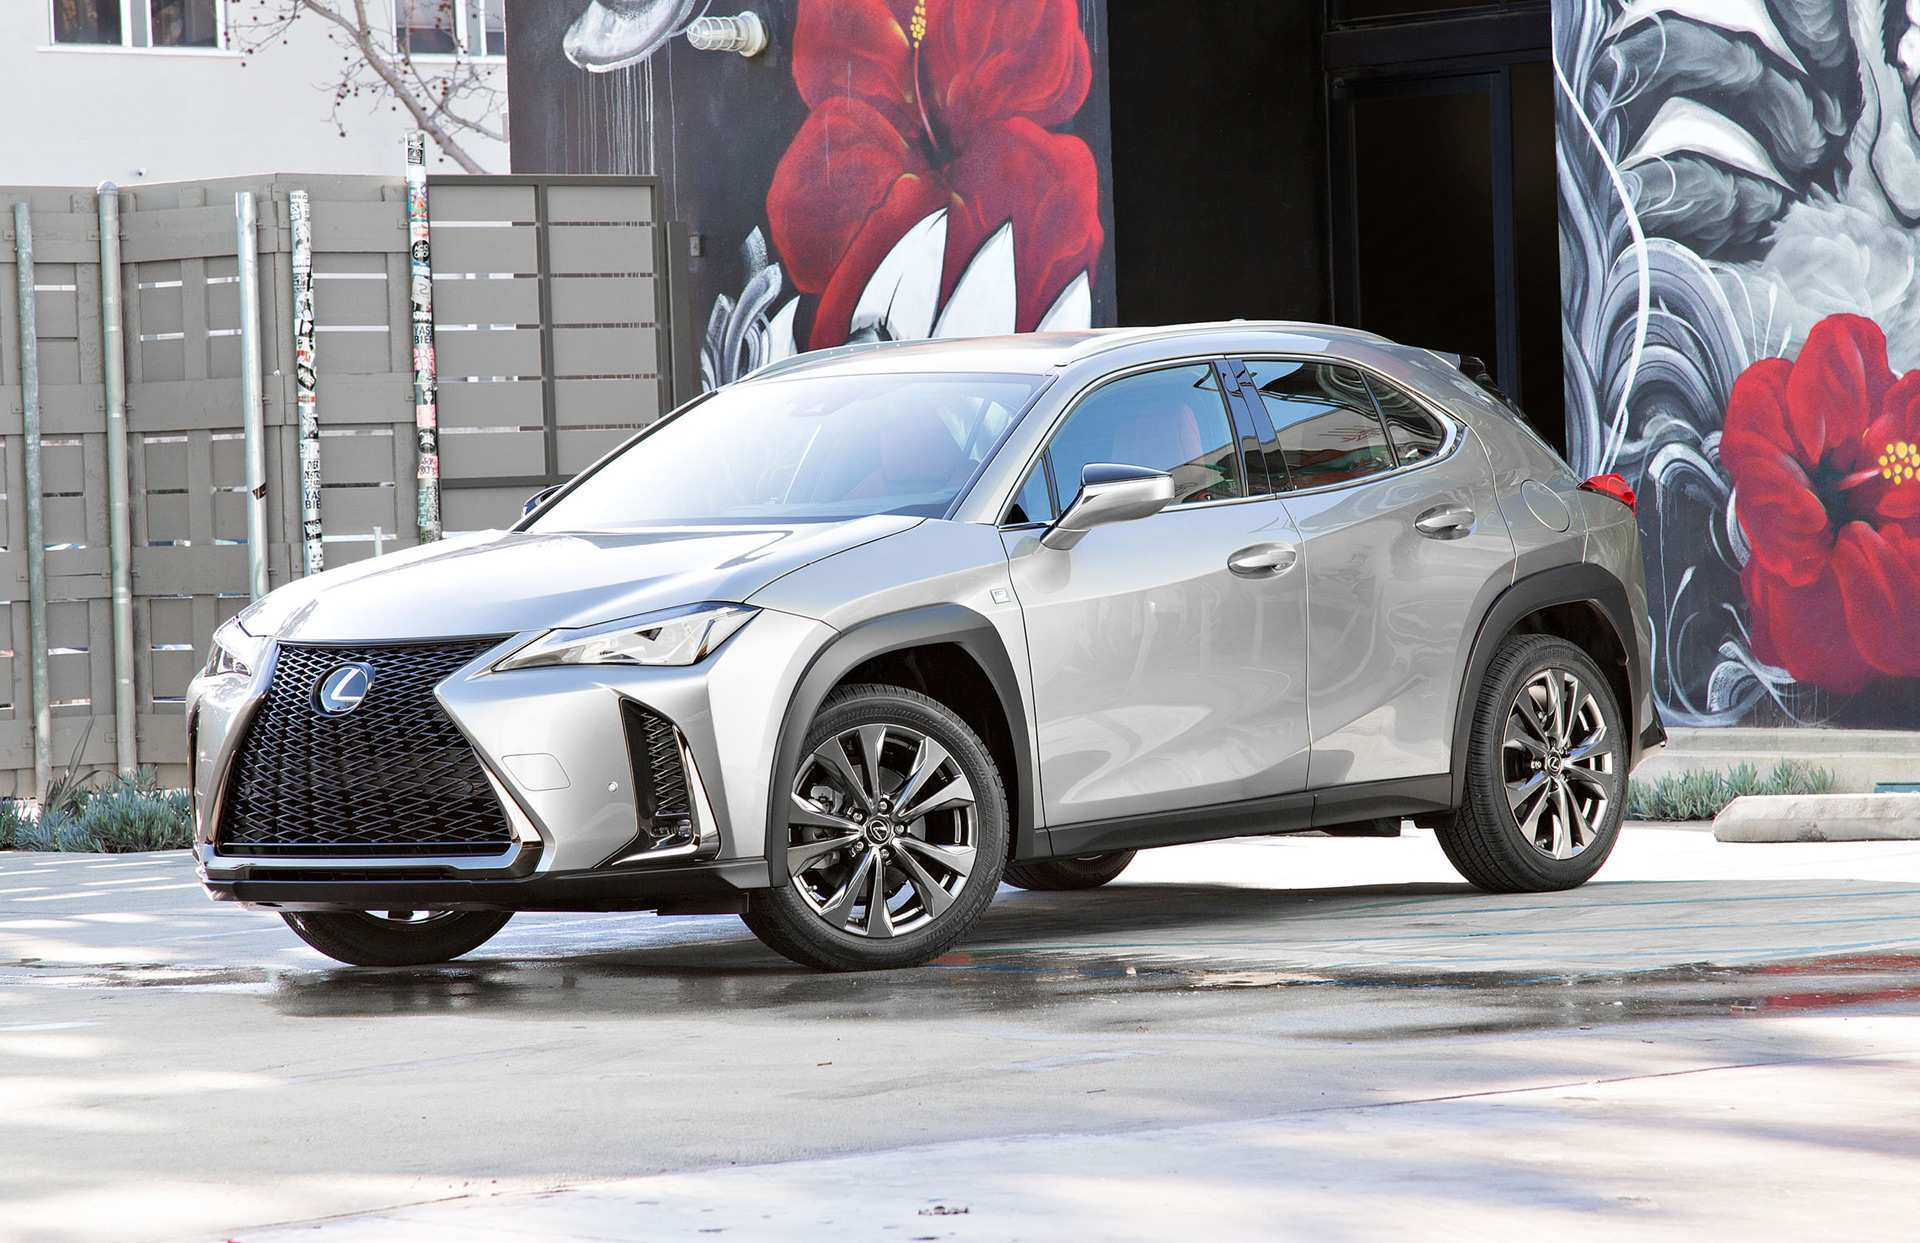 78 A Are The 2019 Lexus Out Yet Release